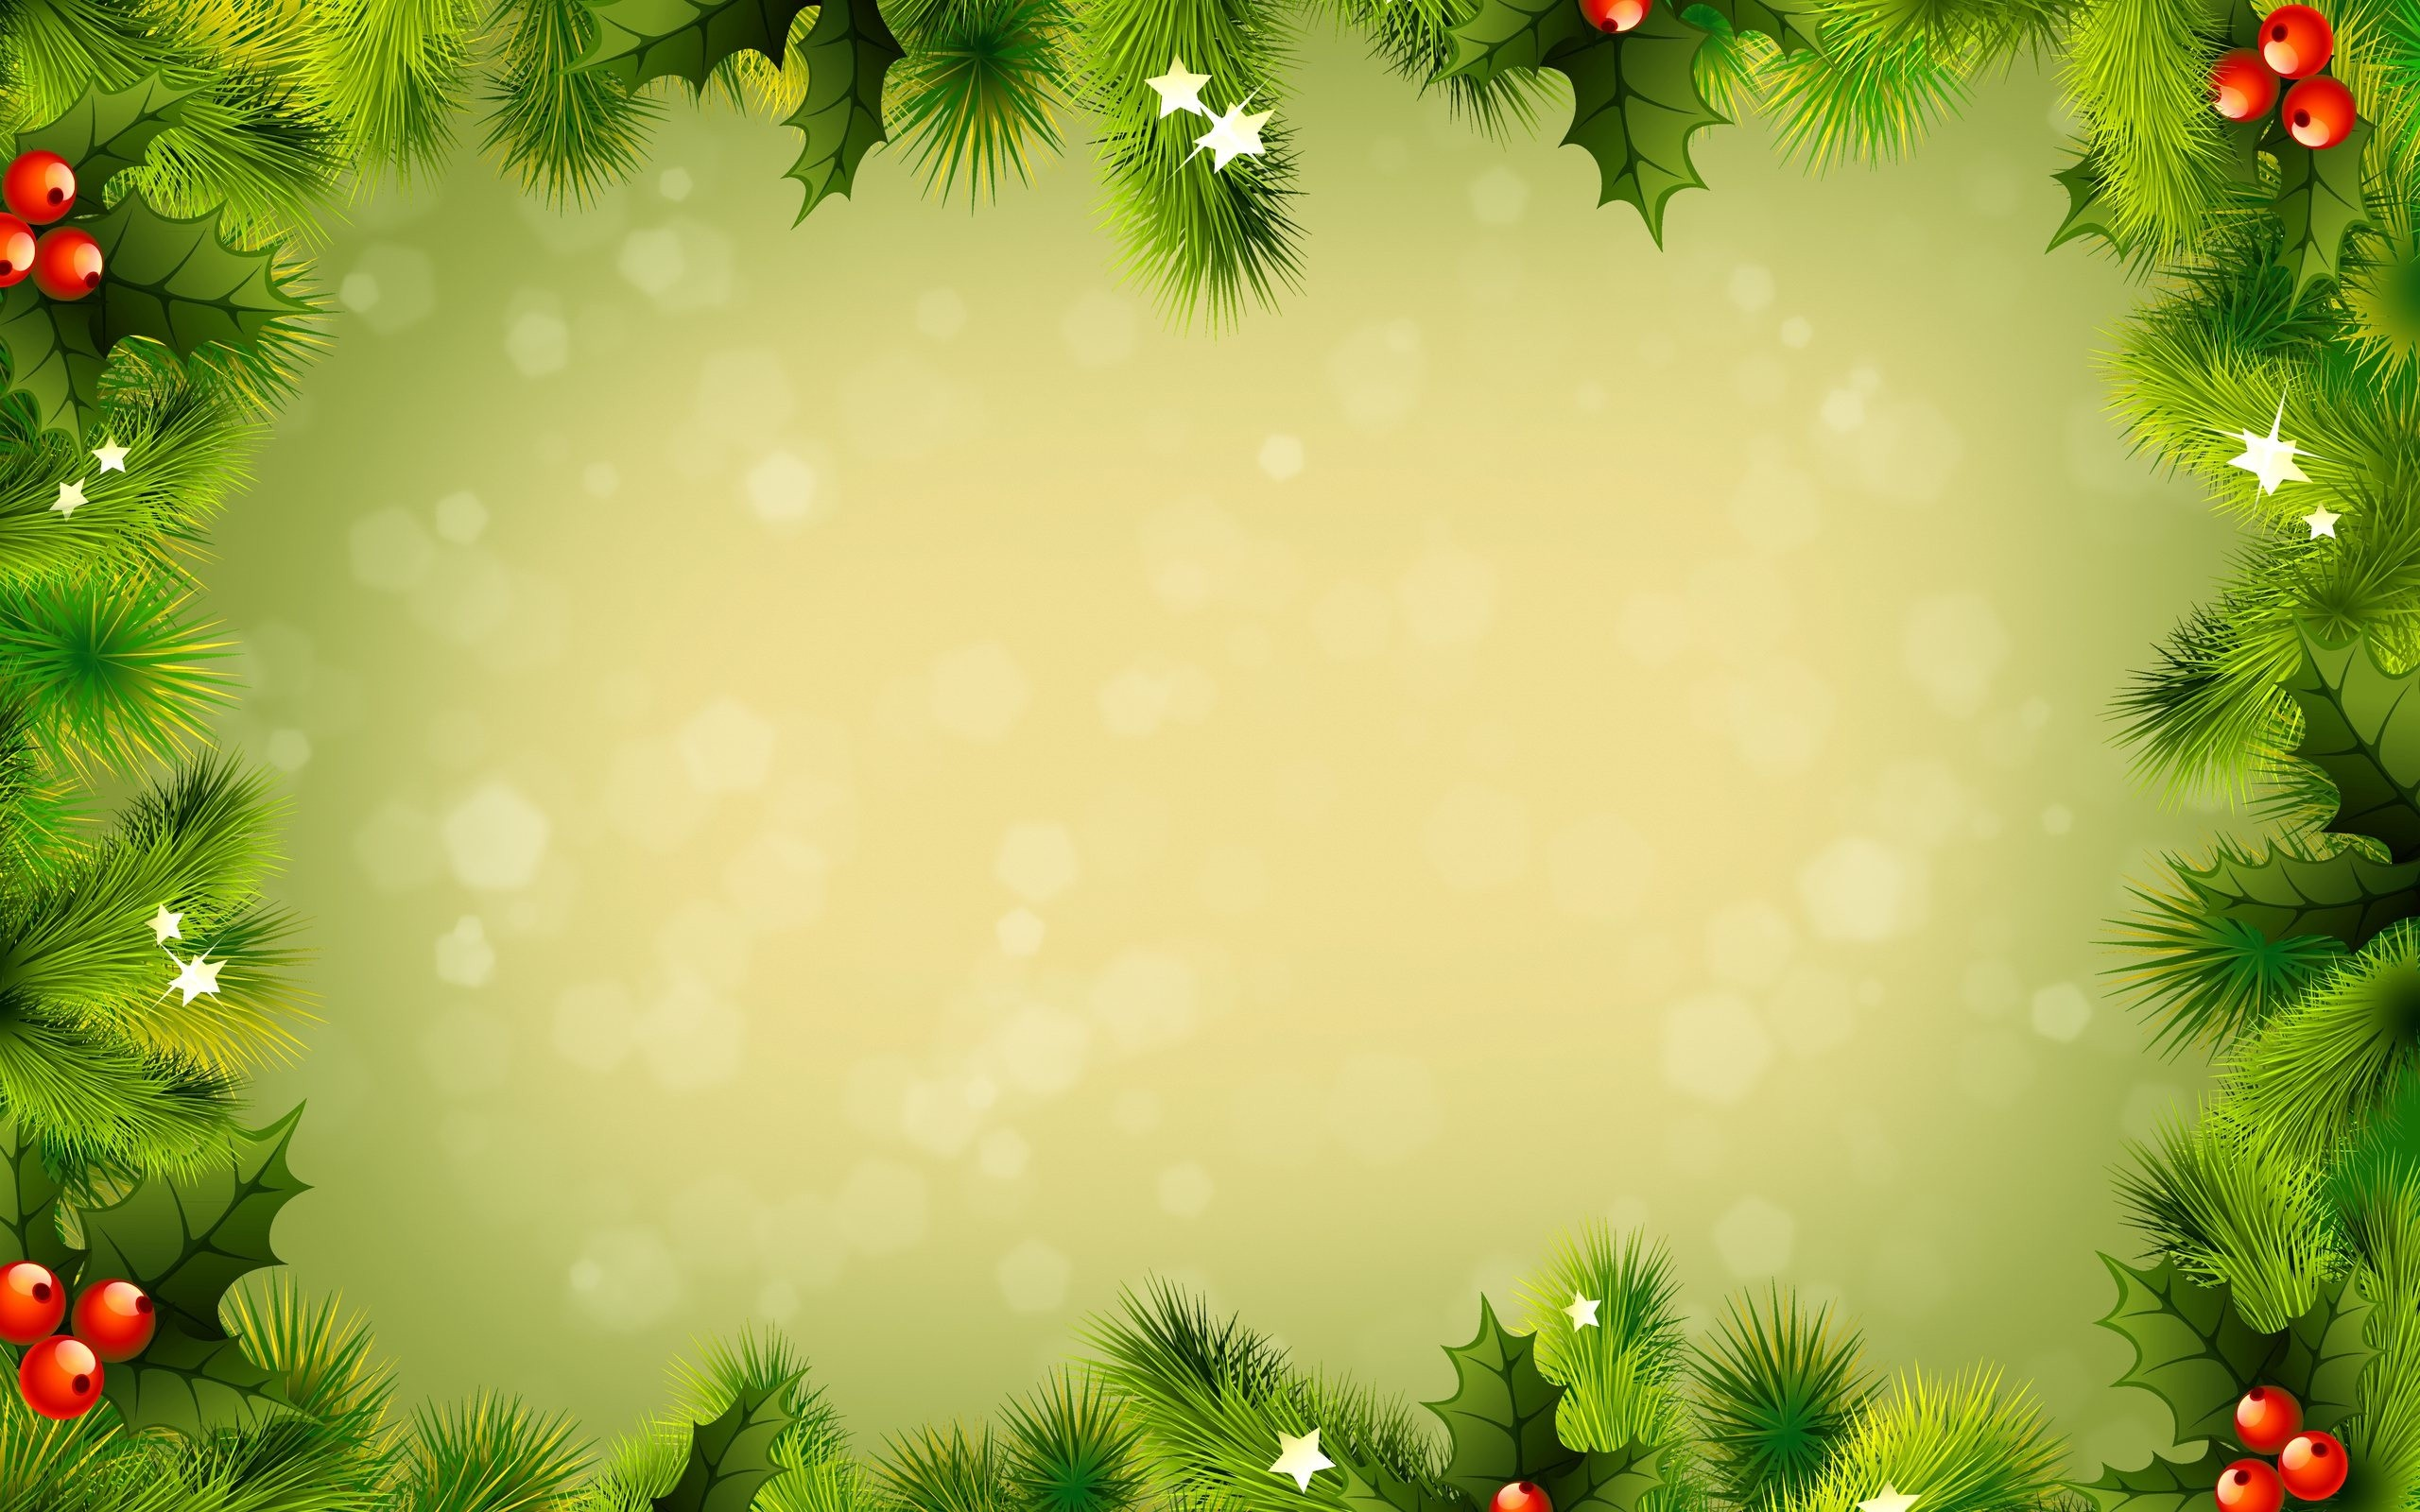 christmas background download free amazing backgrounds for